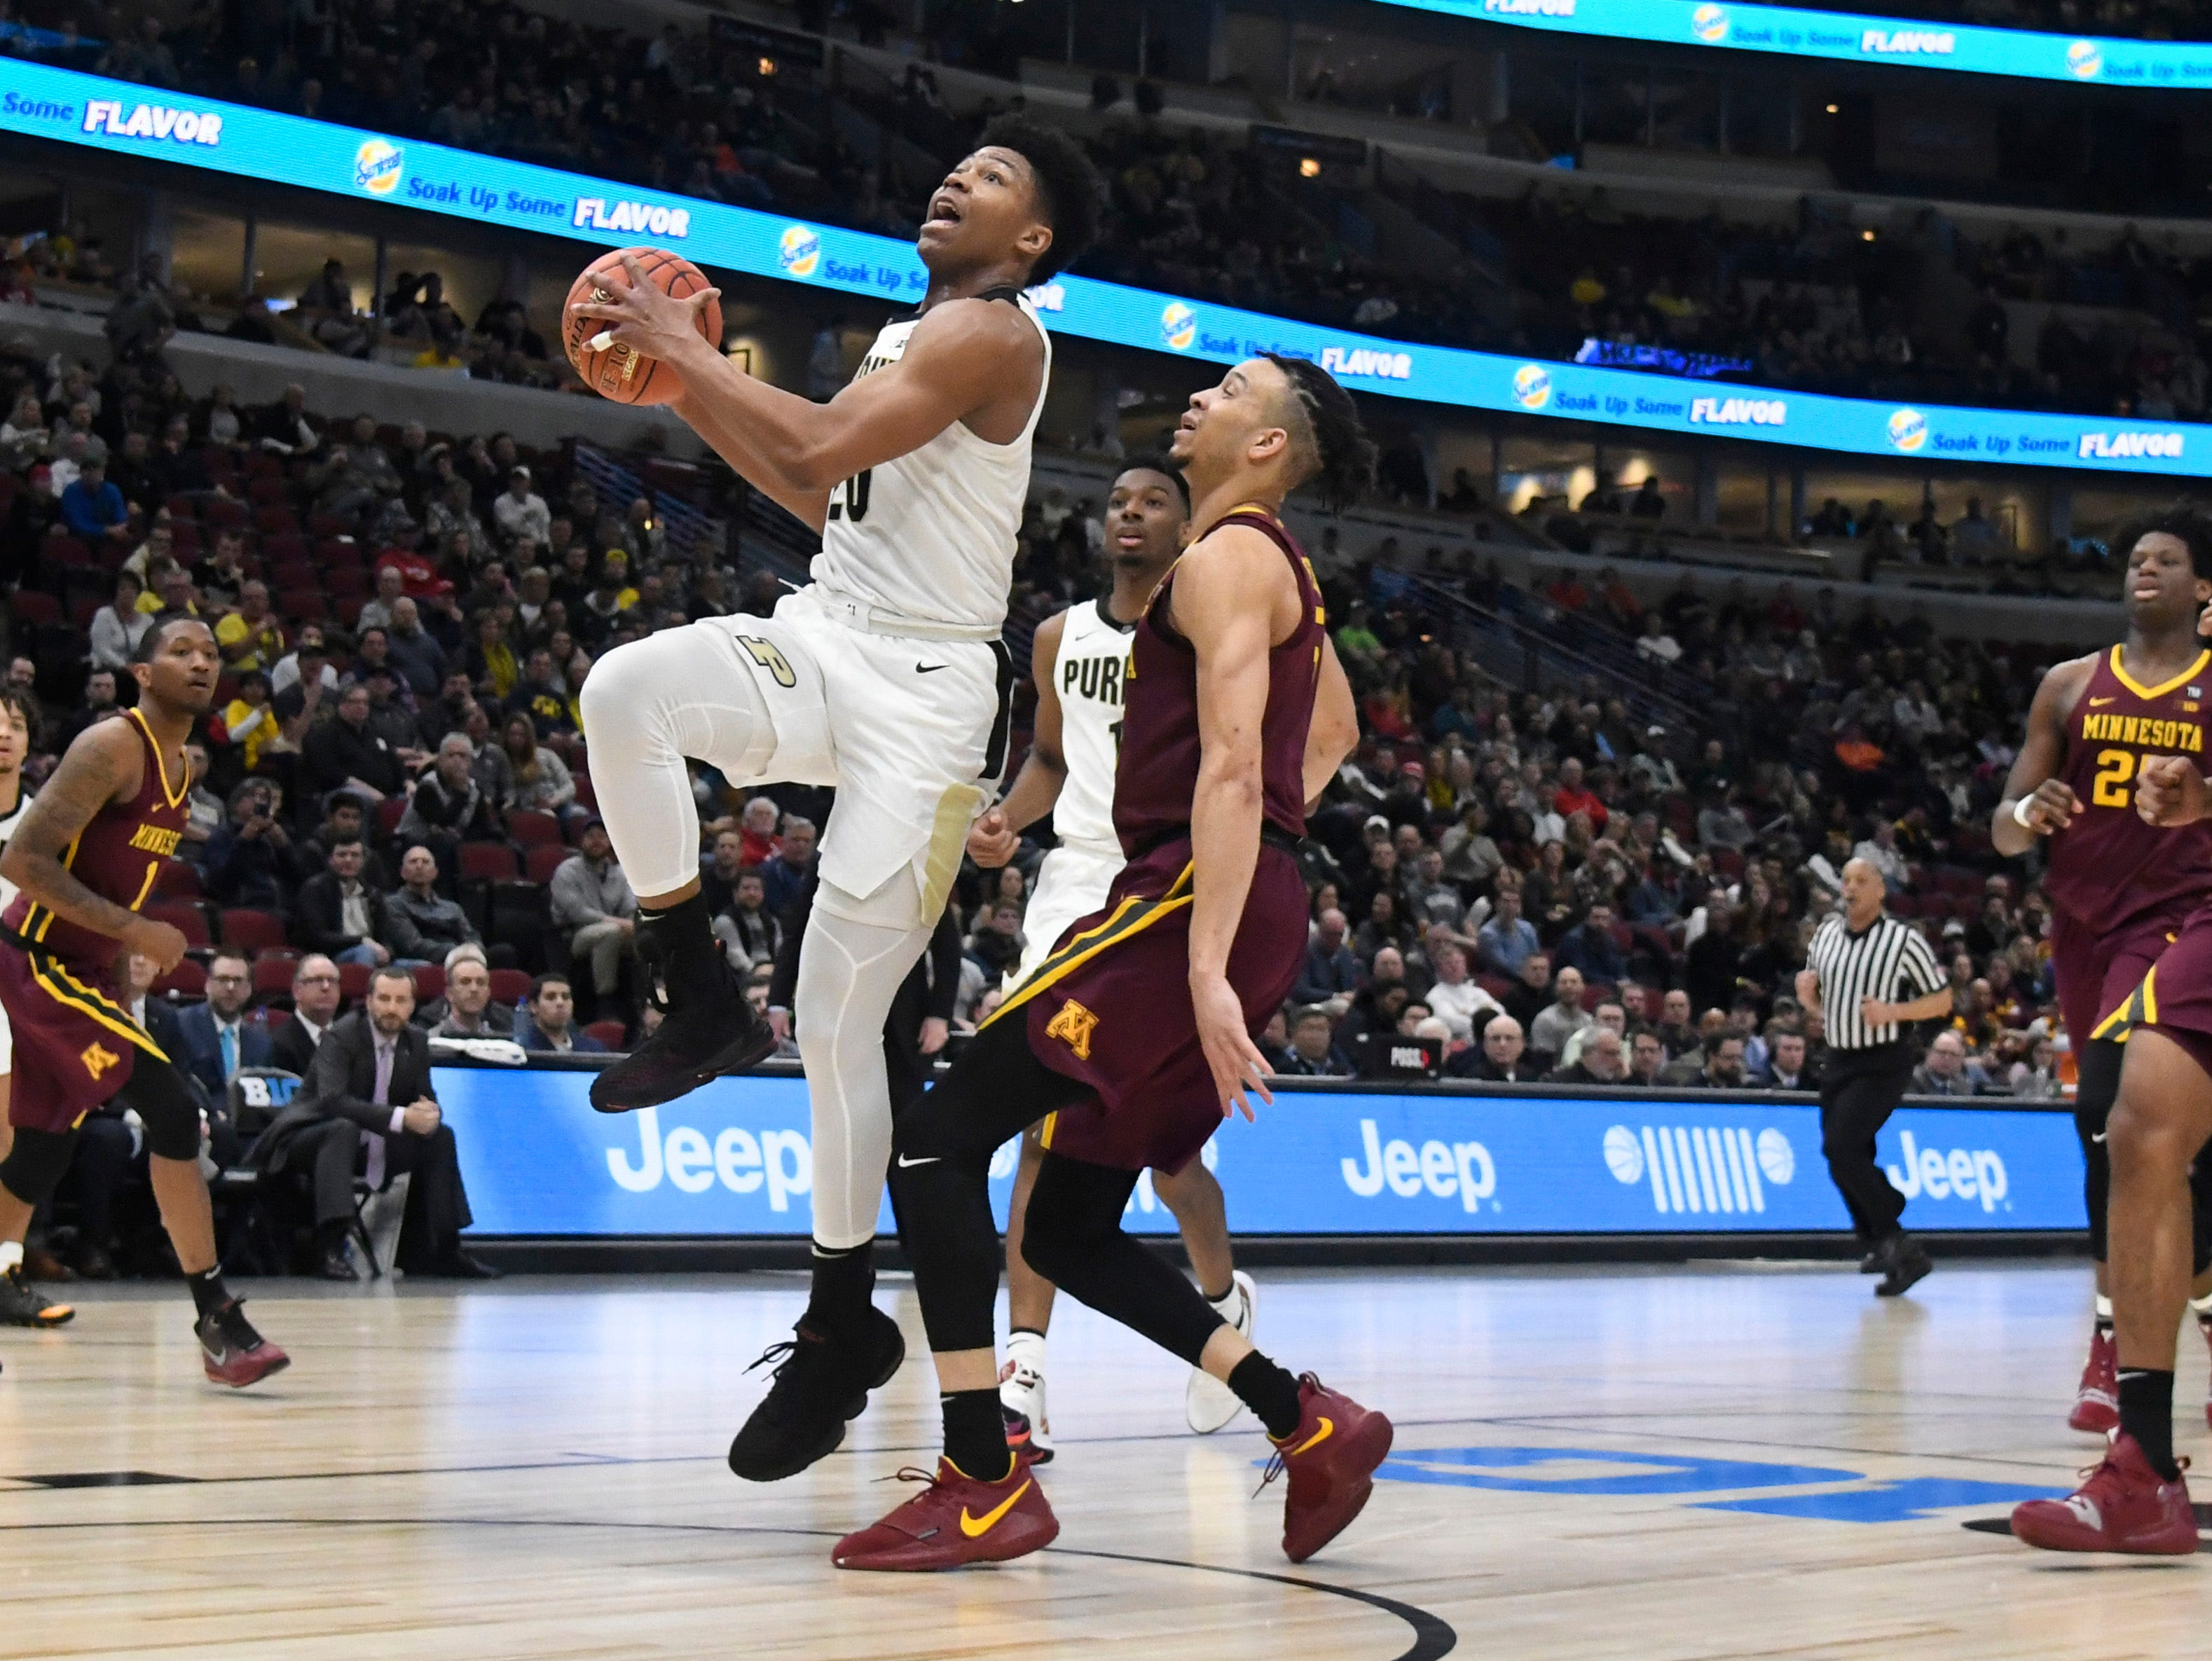 Mar 15, 2019; Chicago, IL, USA; Purdue Boilermakers guard Nojel Eastern (20) drives to the basket against Minnesota Golden Gophers guard Amir Coffey (5) during the second half in the Big Ten conference tournament at United Center. Mandatory Credit: David Banks-USA TODAY Sports